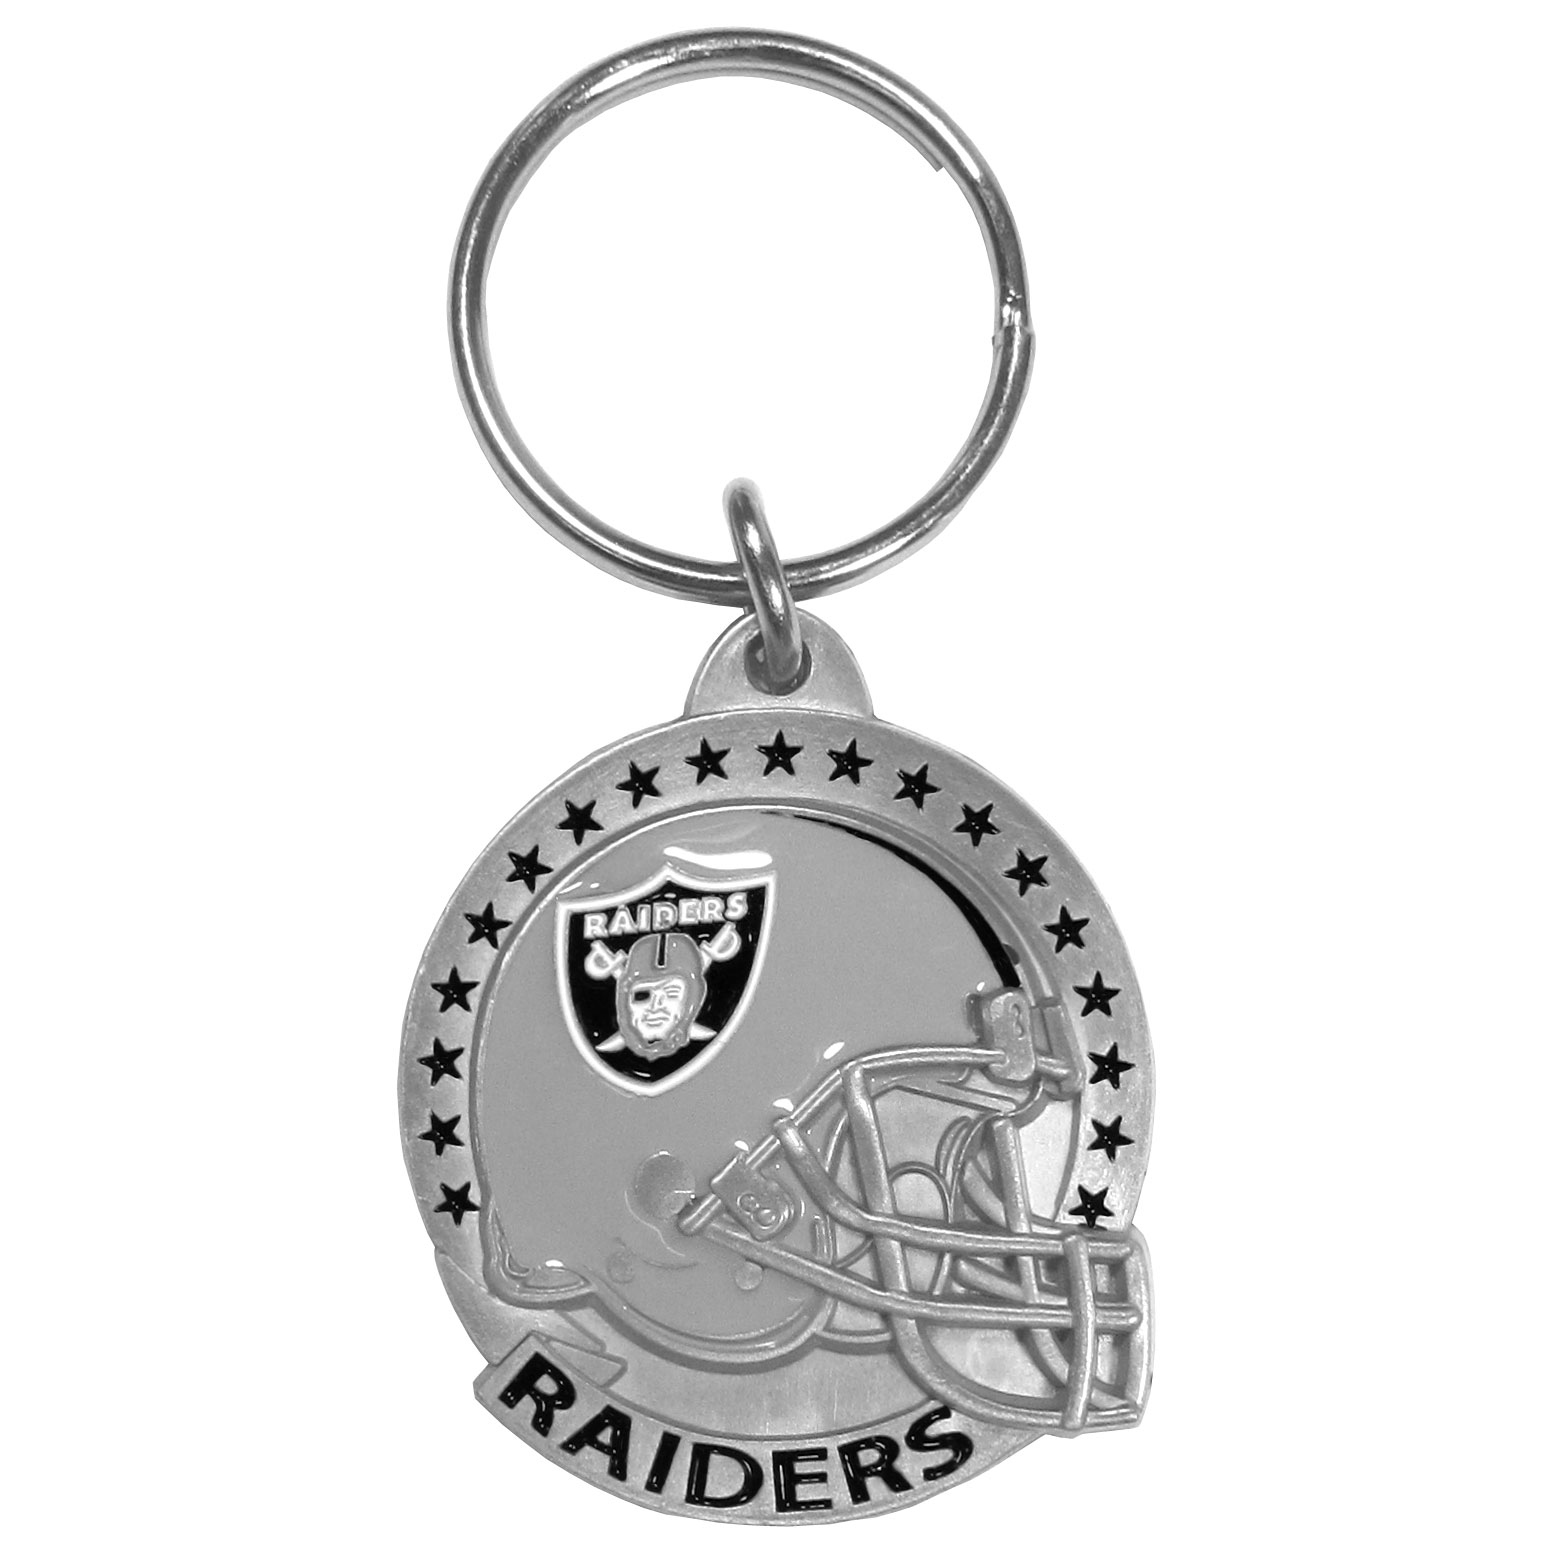 Raiders-keychain